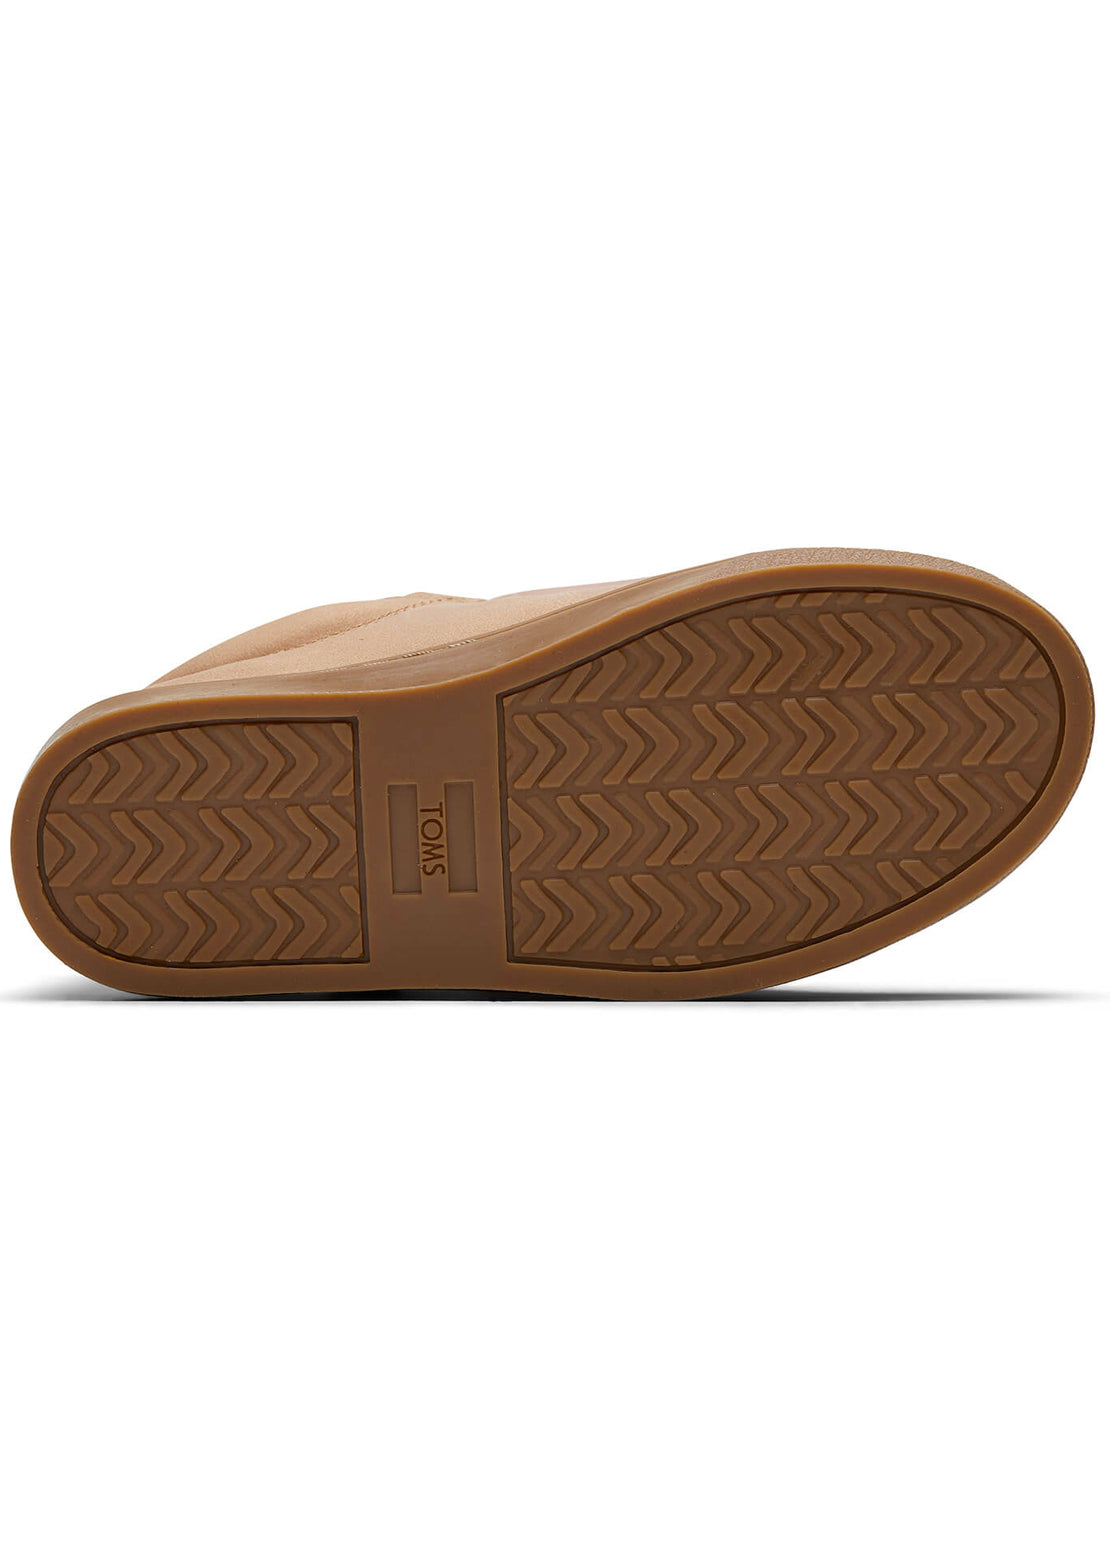 Toms Junior Cusco Casual Boots Honey Synthetic Suede